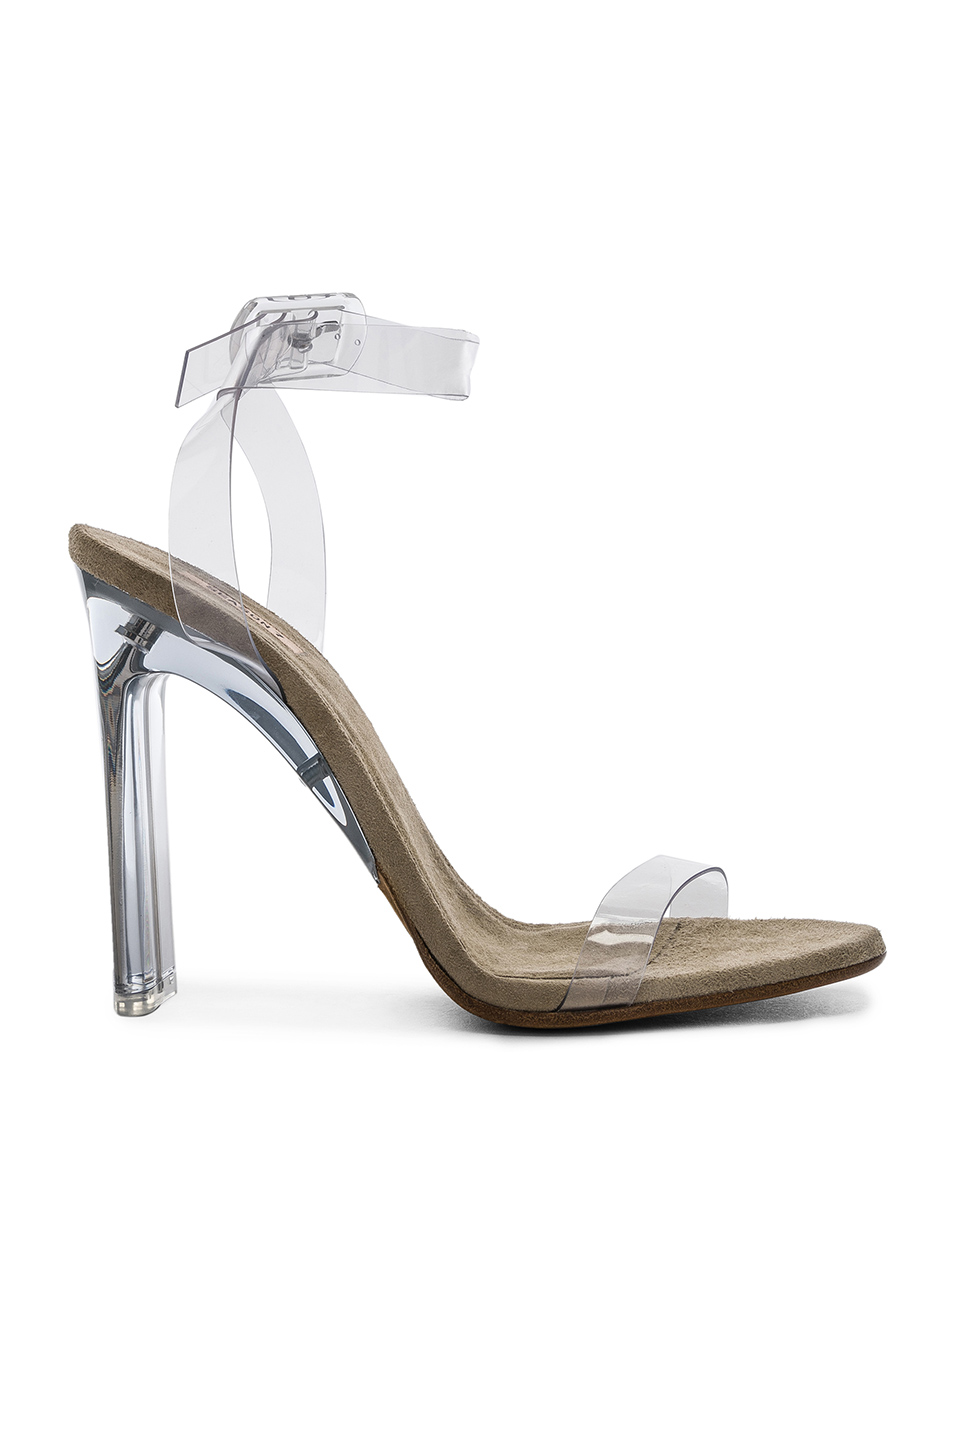 Season 6 Ankle Strap PVC Heels by Yeezy, available on fwrd.com for $588 Kim Kardashian Shoes Exact Product